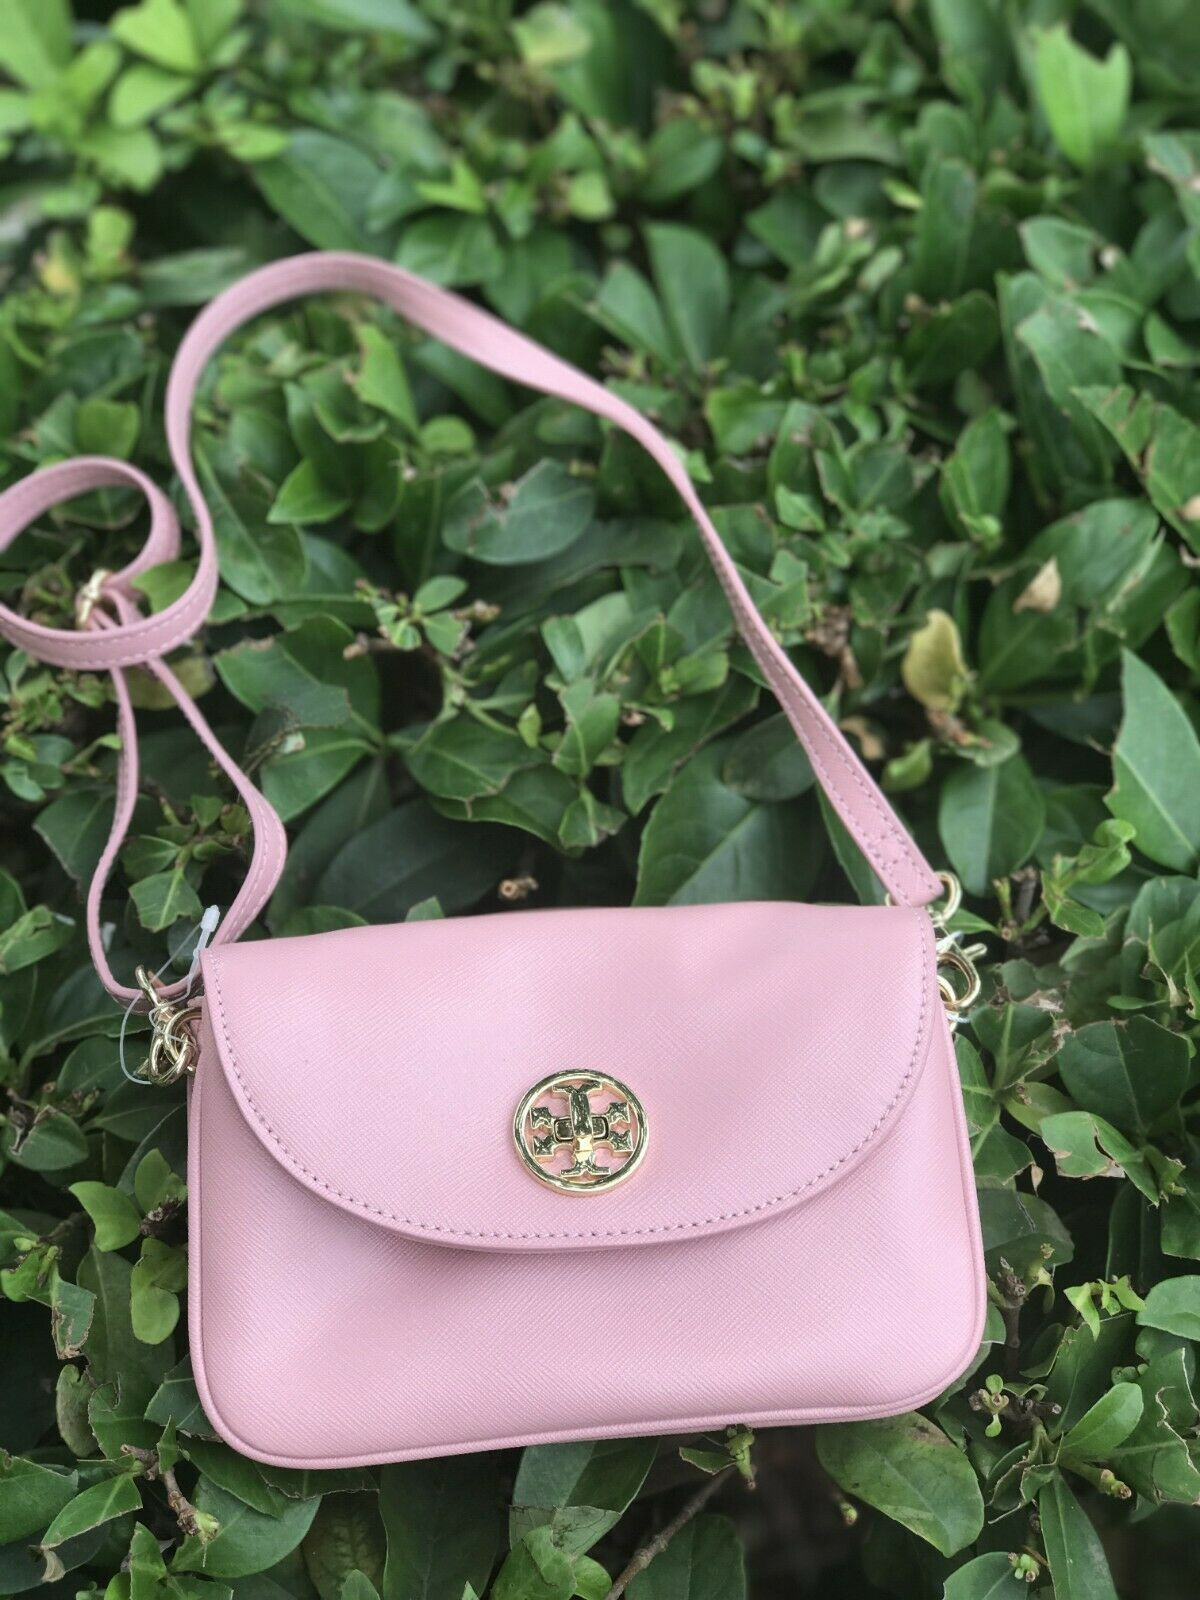 Primary image for NWT TORY BURCH Robinson Small Crossbody Clutch Bag, PINK Sachet